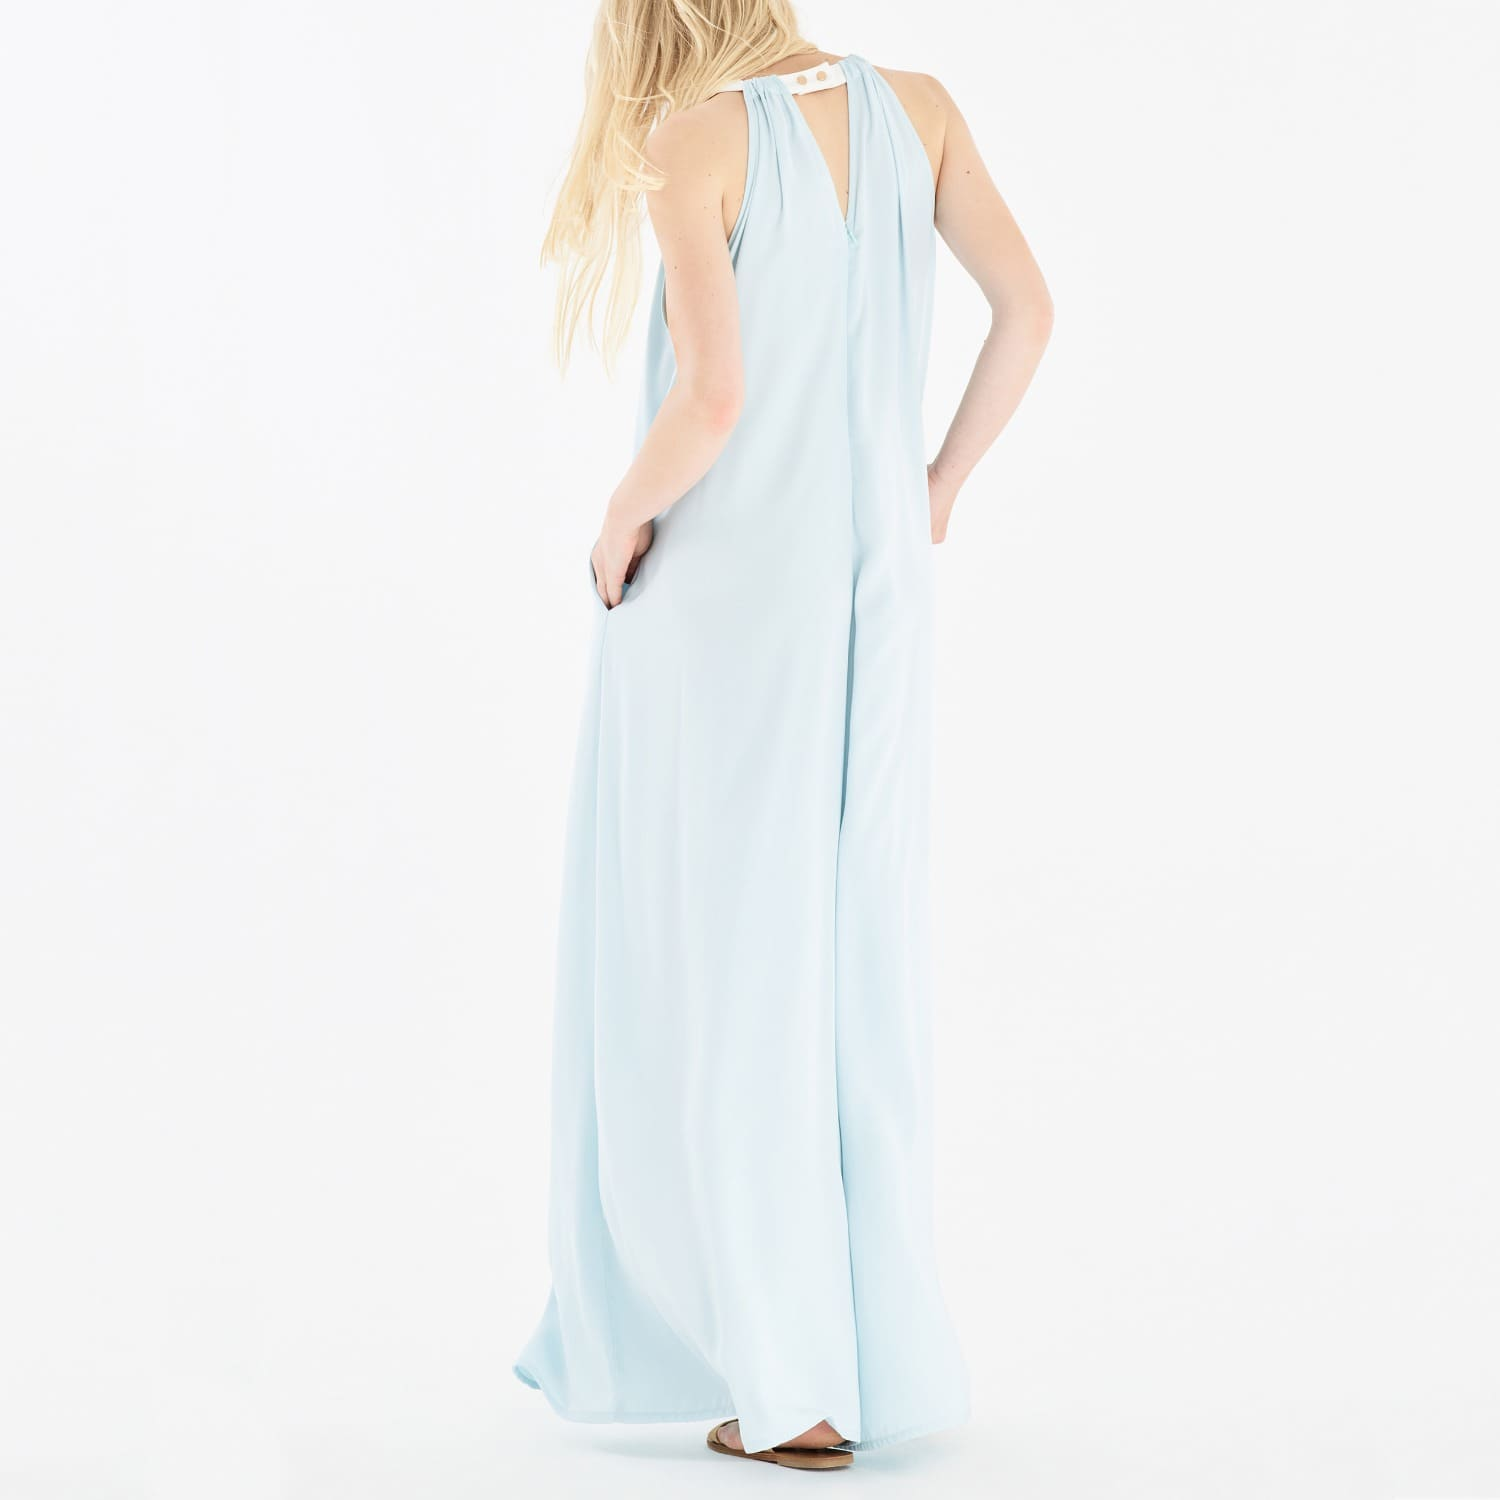 fc60b5f68e Two Tone Halter Neck Jumpsuit with Pastel Belt in Light Blue   White image